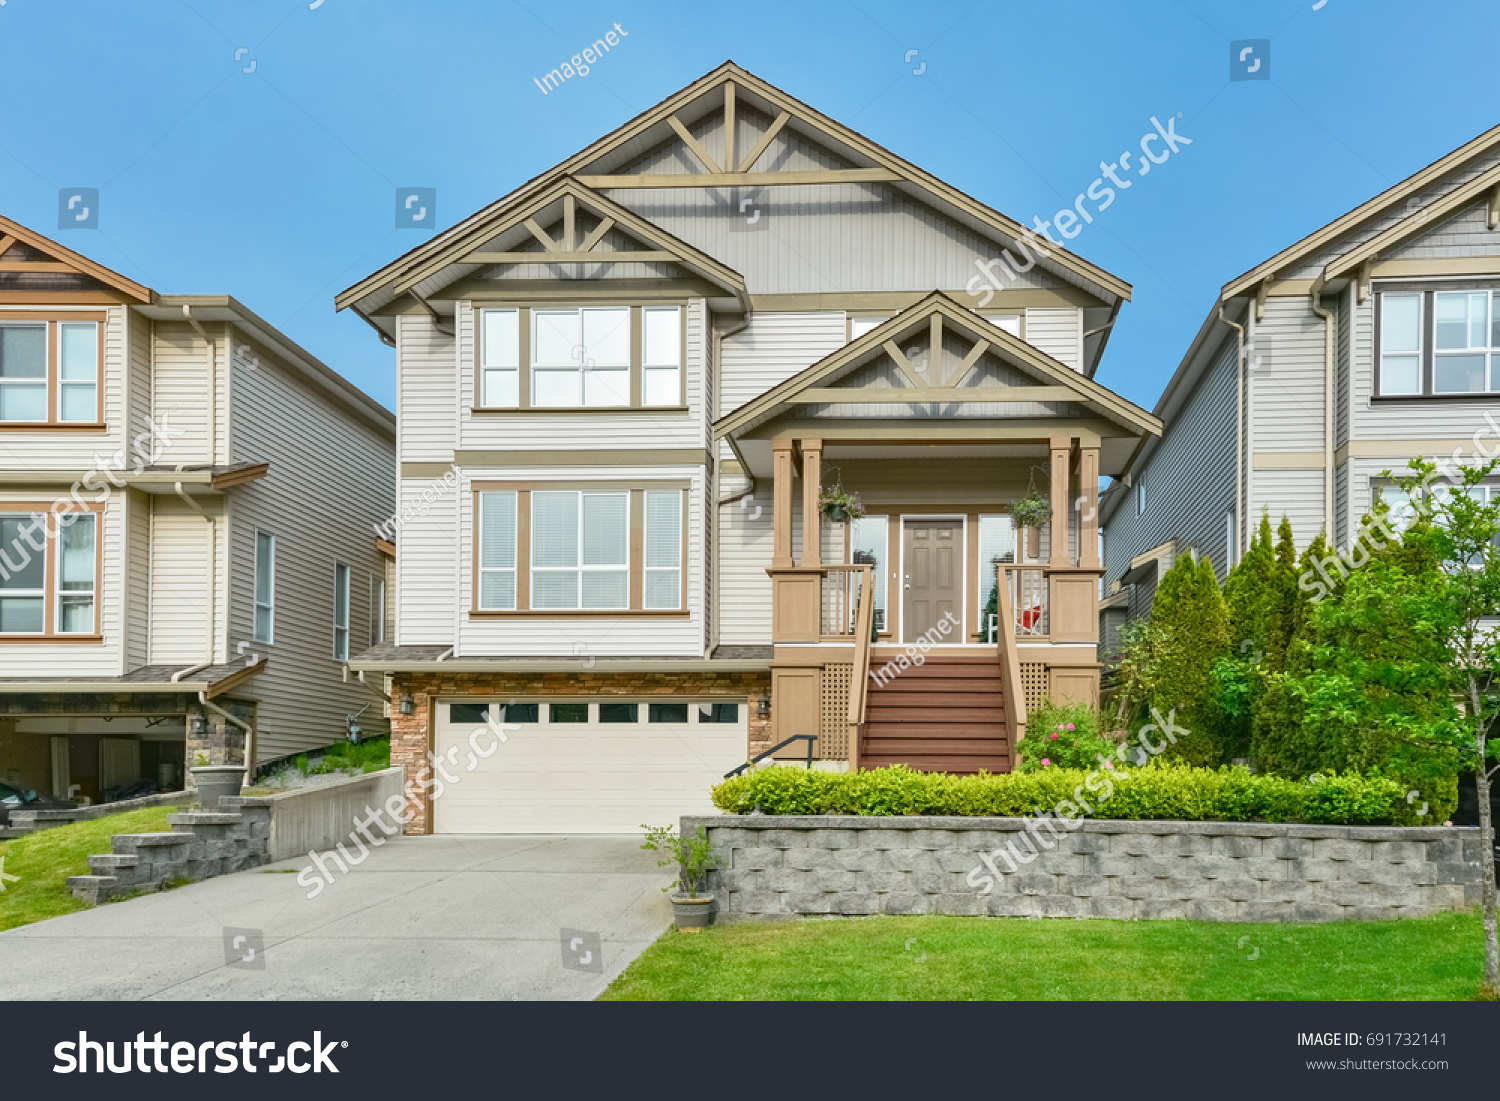 Main Entrance Residential House Concrete Driveway Buildings Landmarks Stock Image 691732141